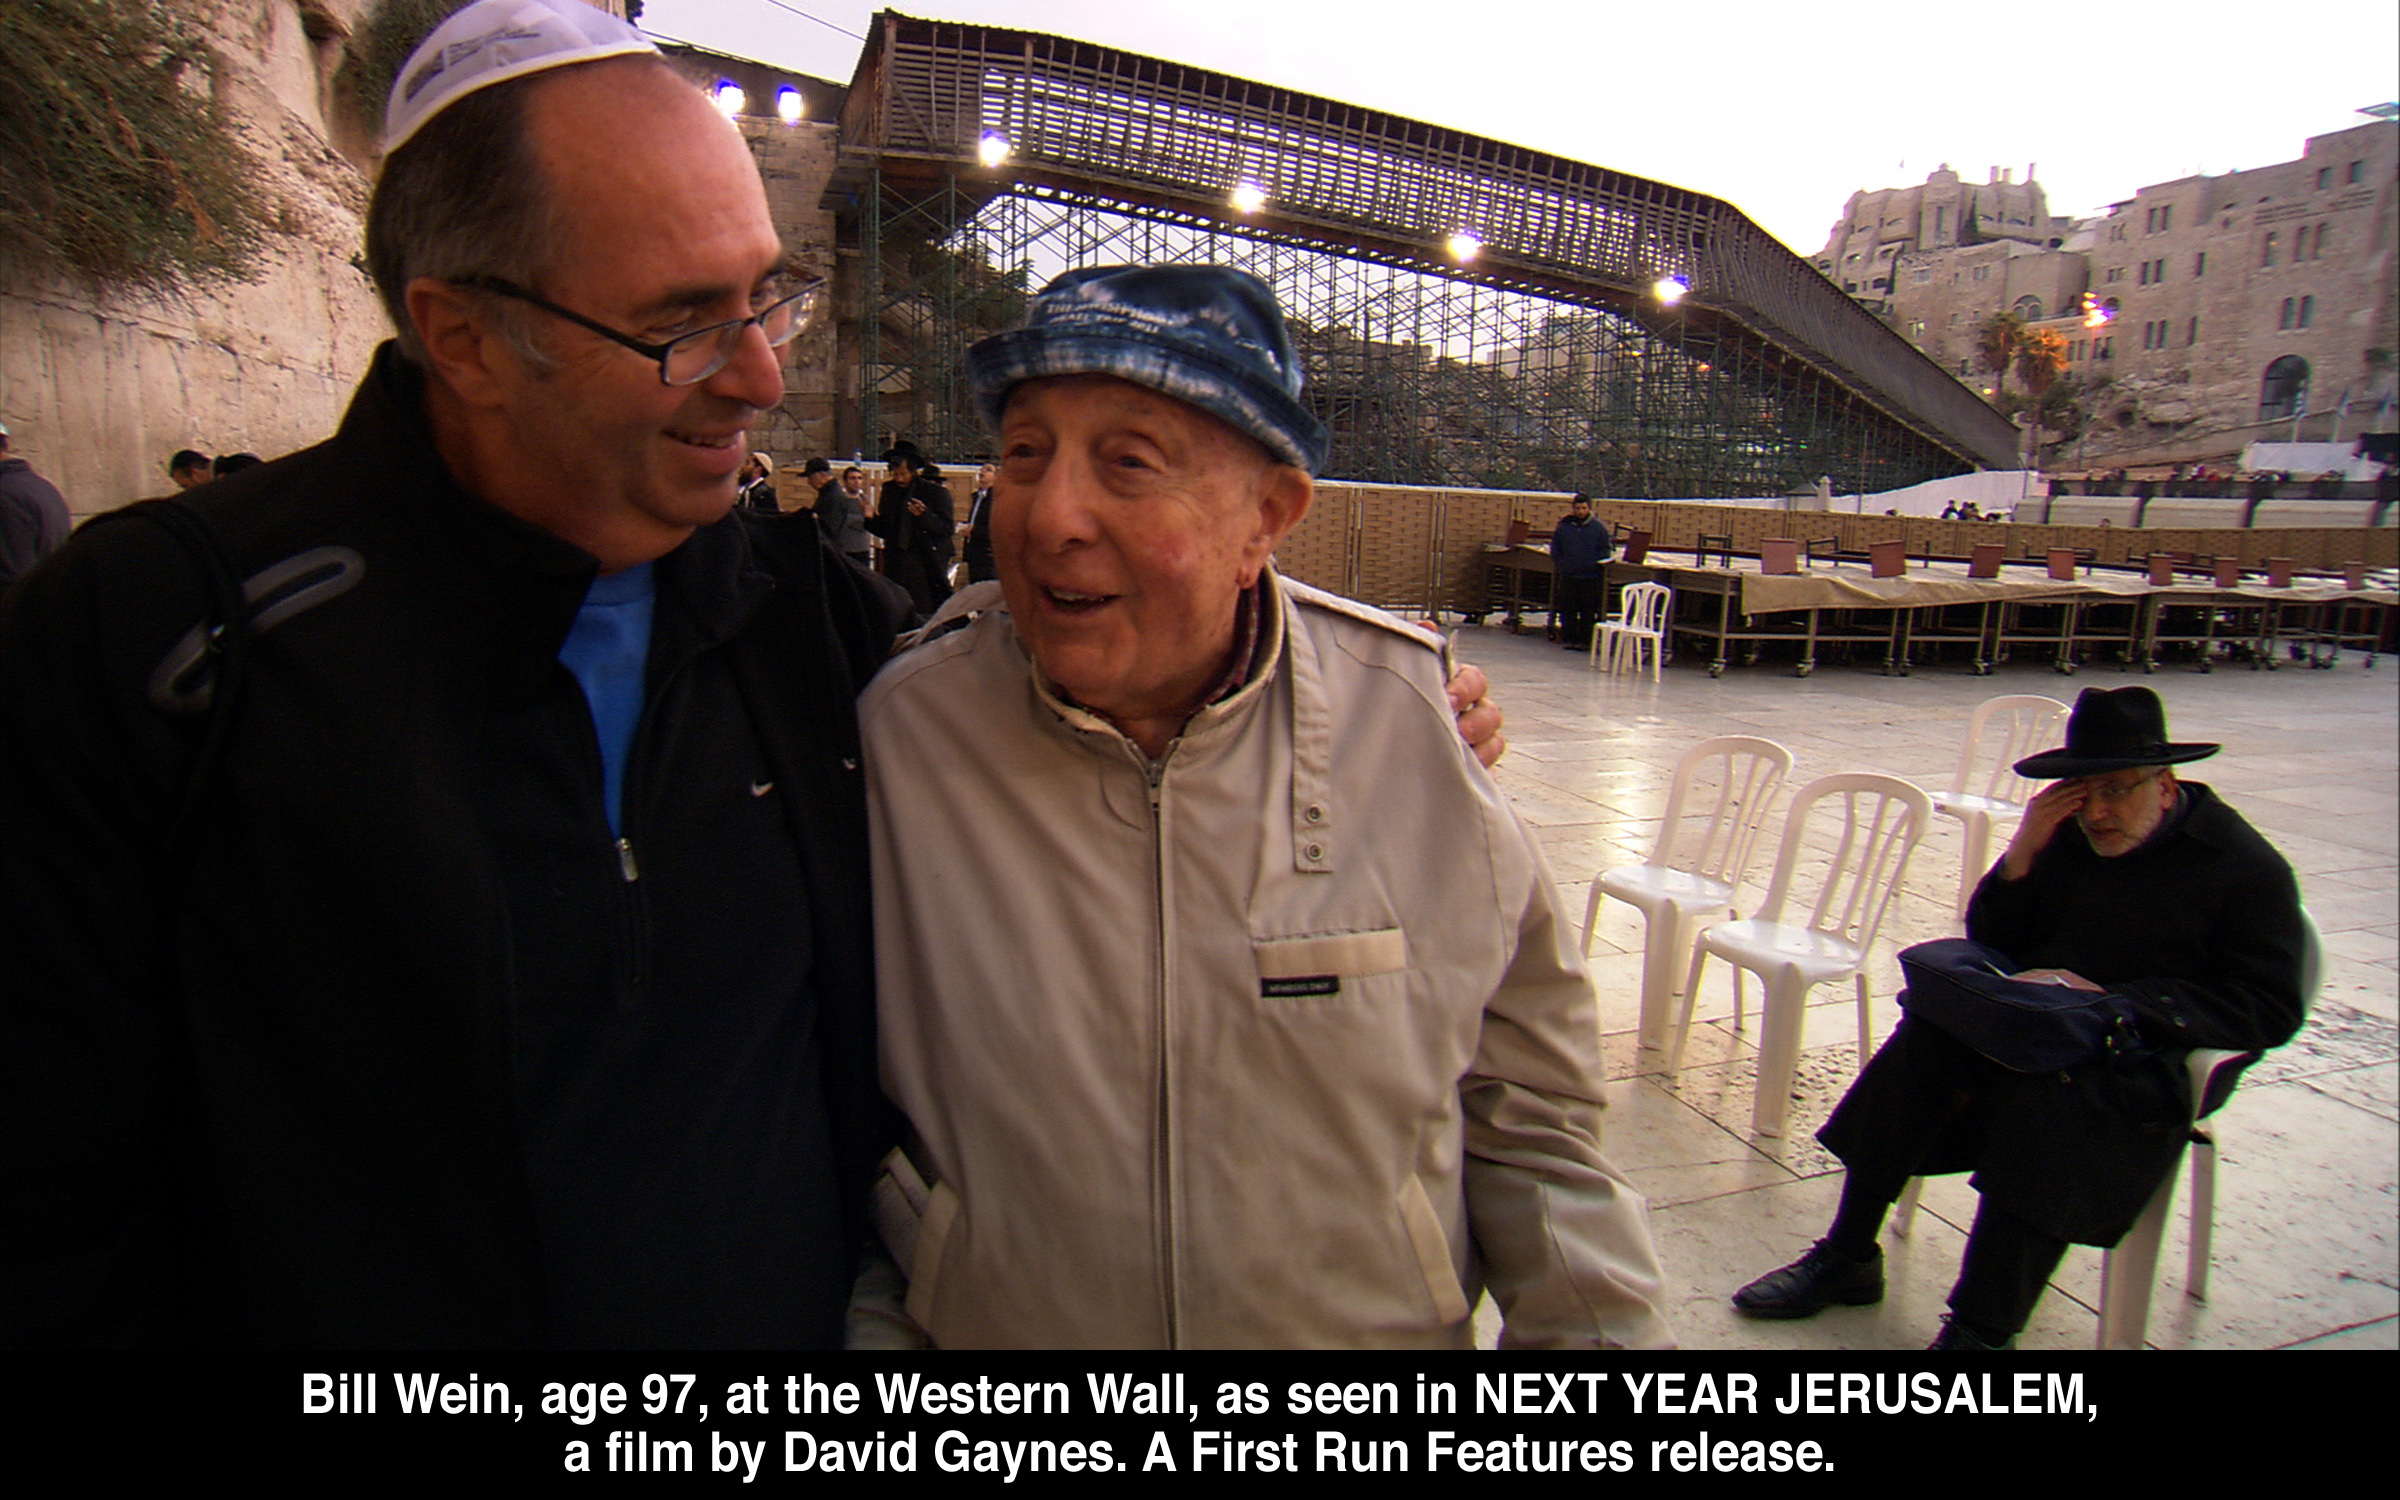 Bill Wein (97) at the Western Wall, as seen in Next Year Jerusalem, a film by David   Gaynes.